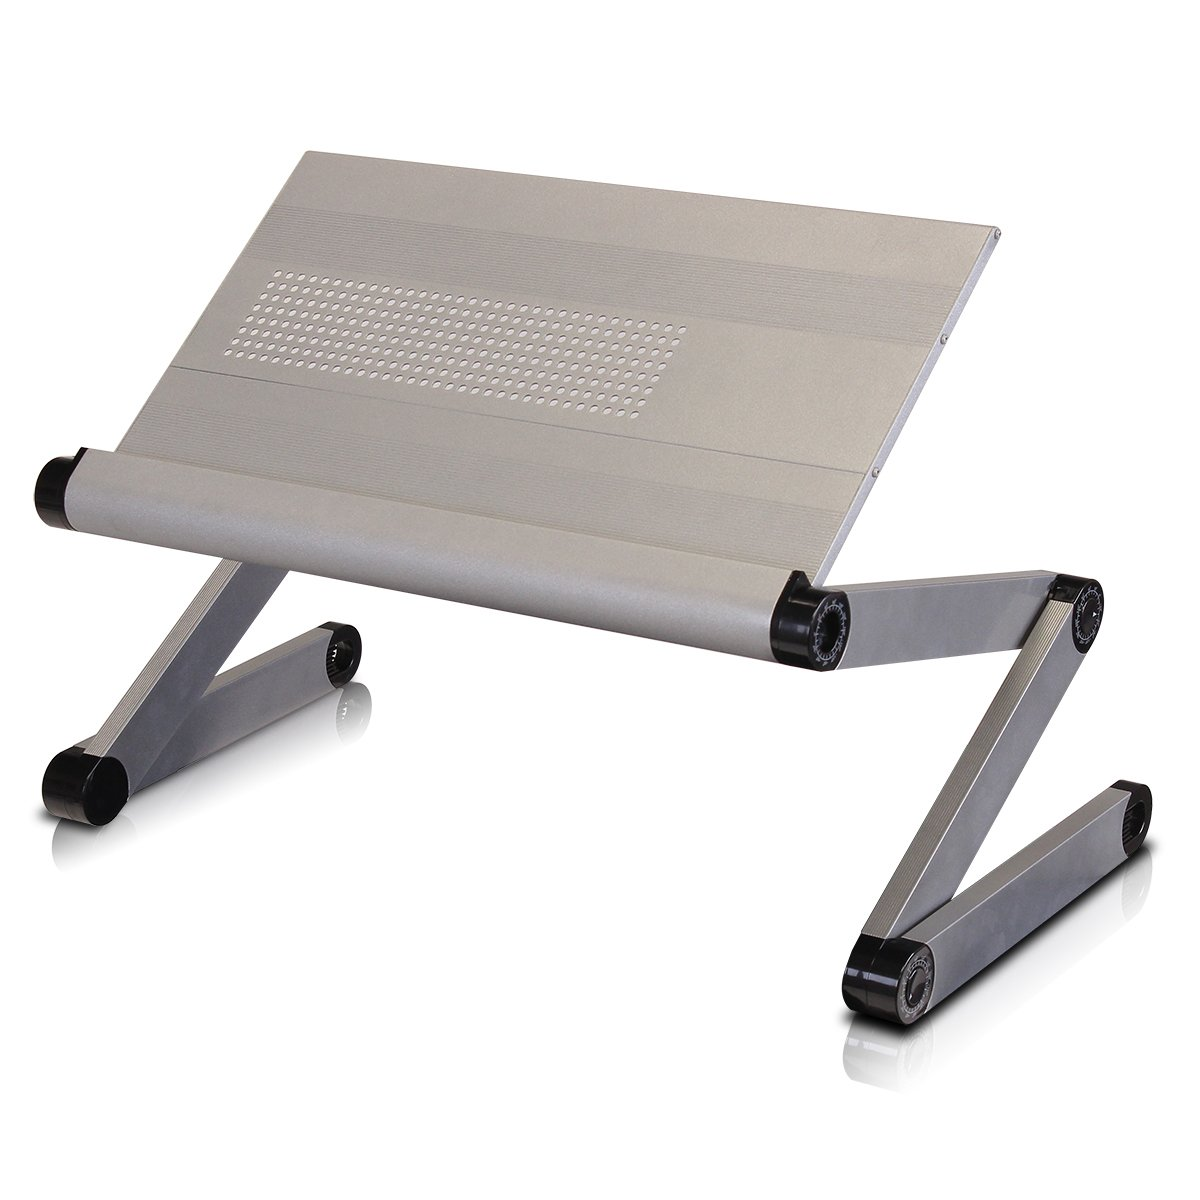 Amazon.com: Furinno K6-SV Premium Aluminum 360 Adjustable Portable Folding Lapdesk: Home & Kitchen